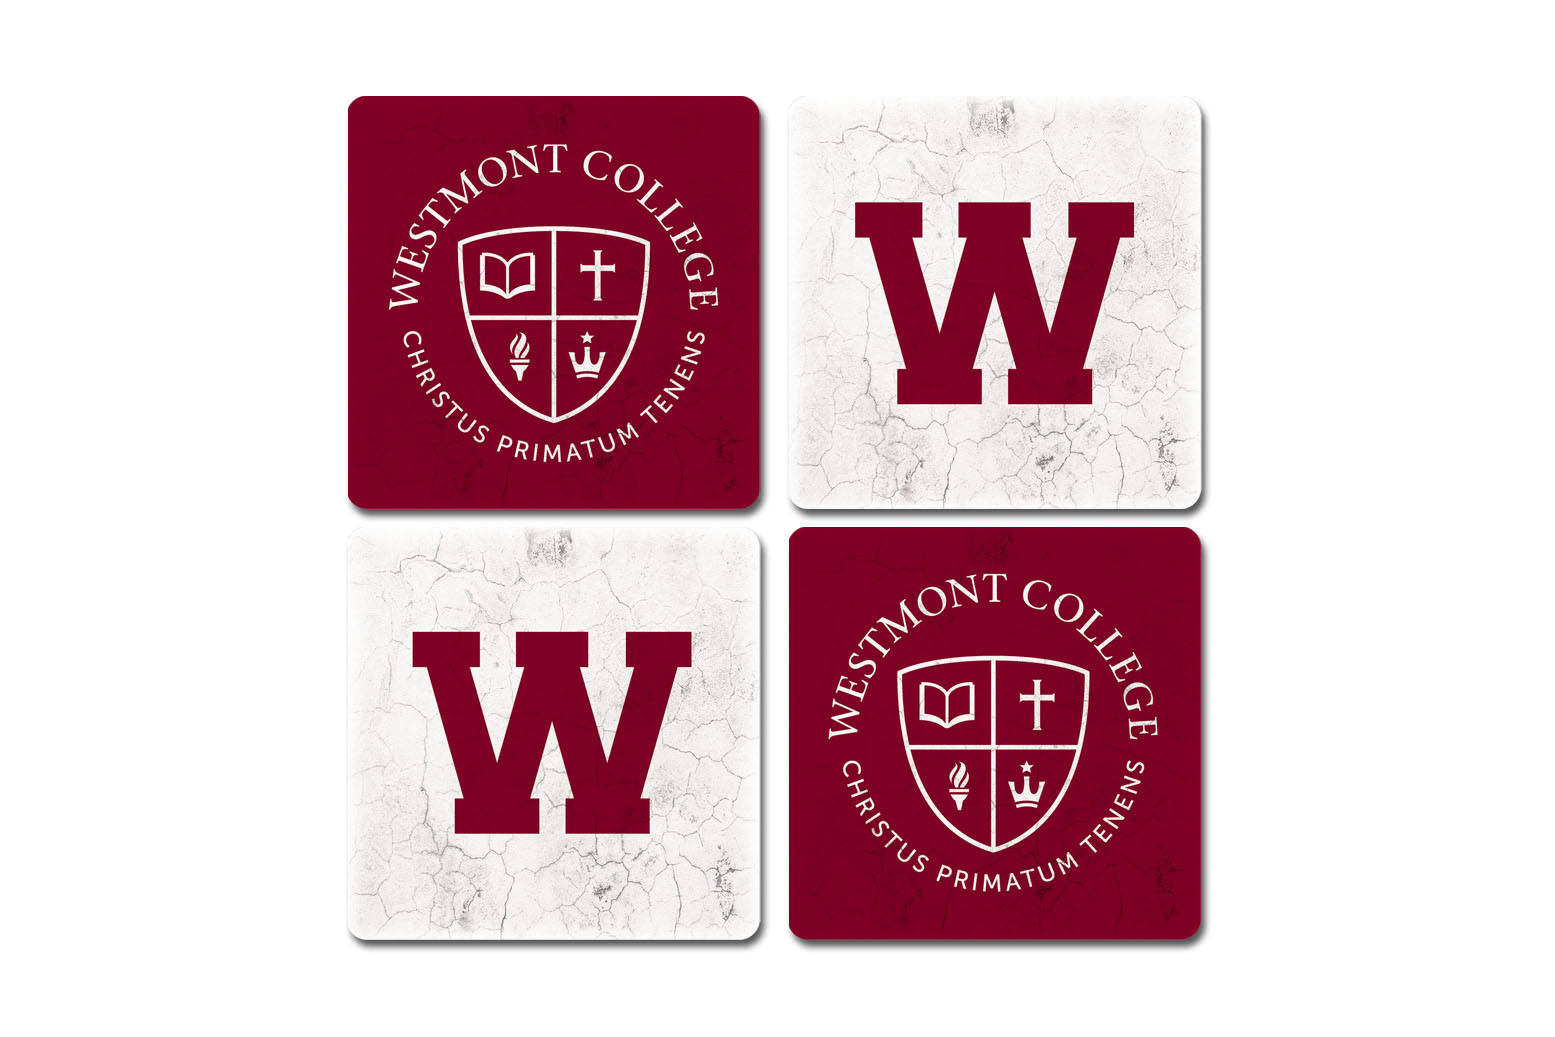 Image for the Legacy Westmont Thirsty Coaster - 4 Pack product